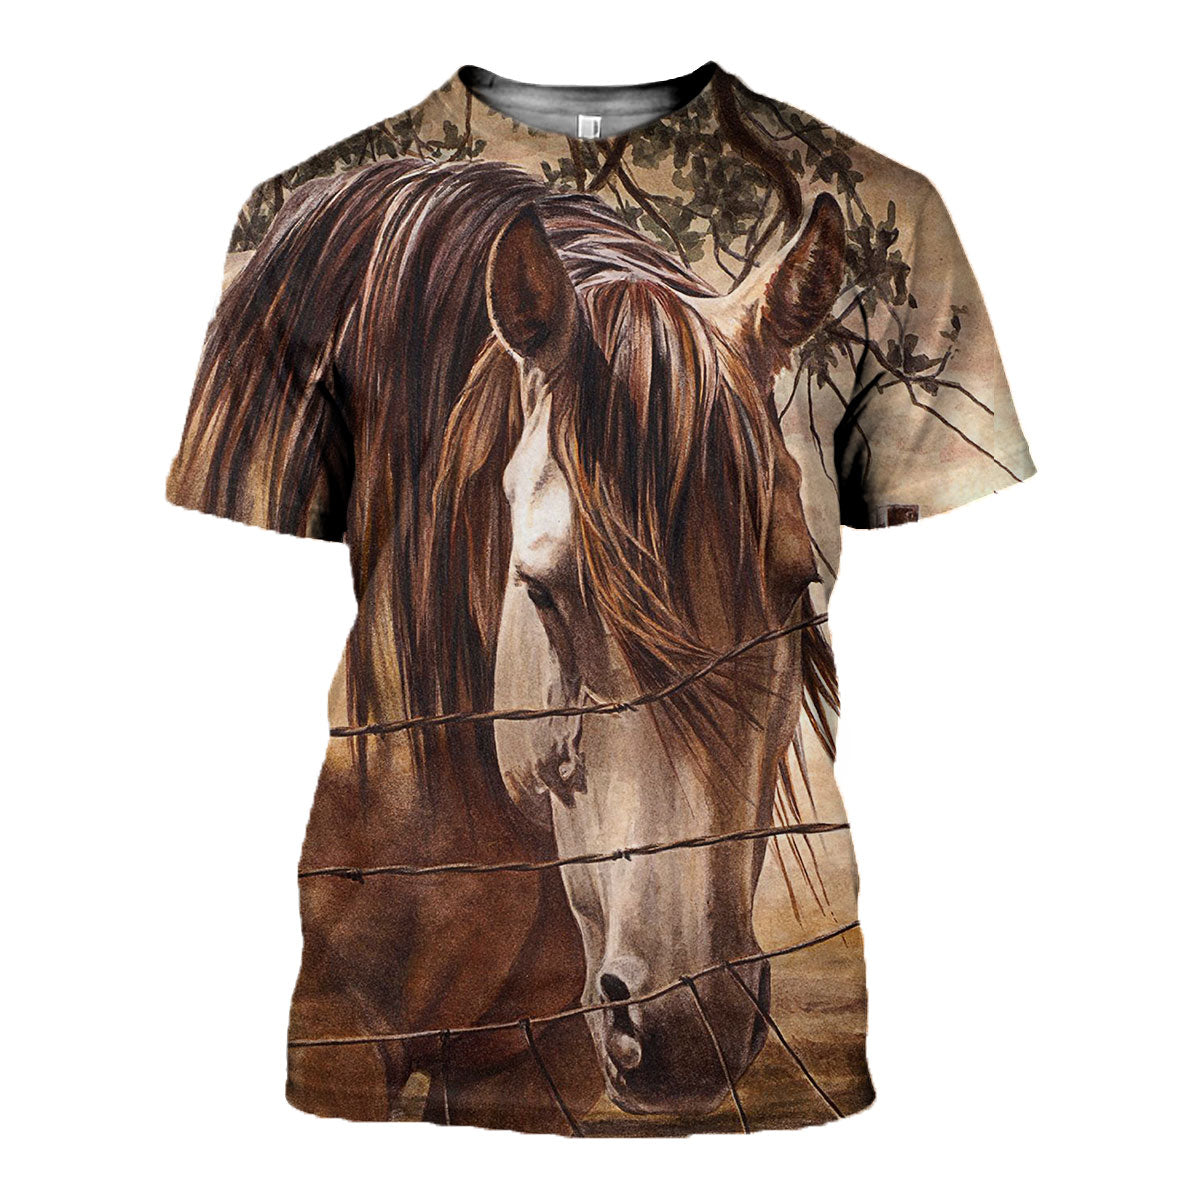 3D All Over Printed Horse Art Shirts and Shorts